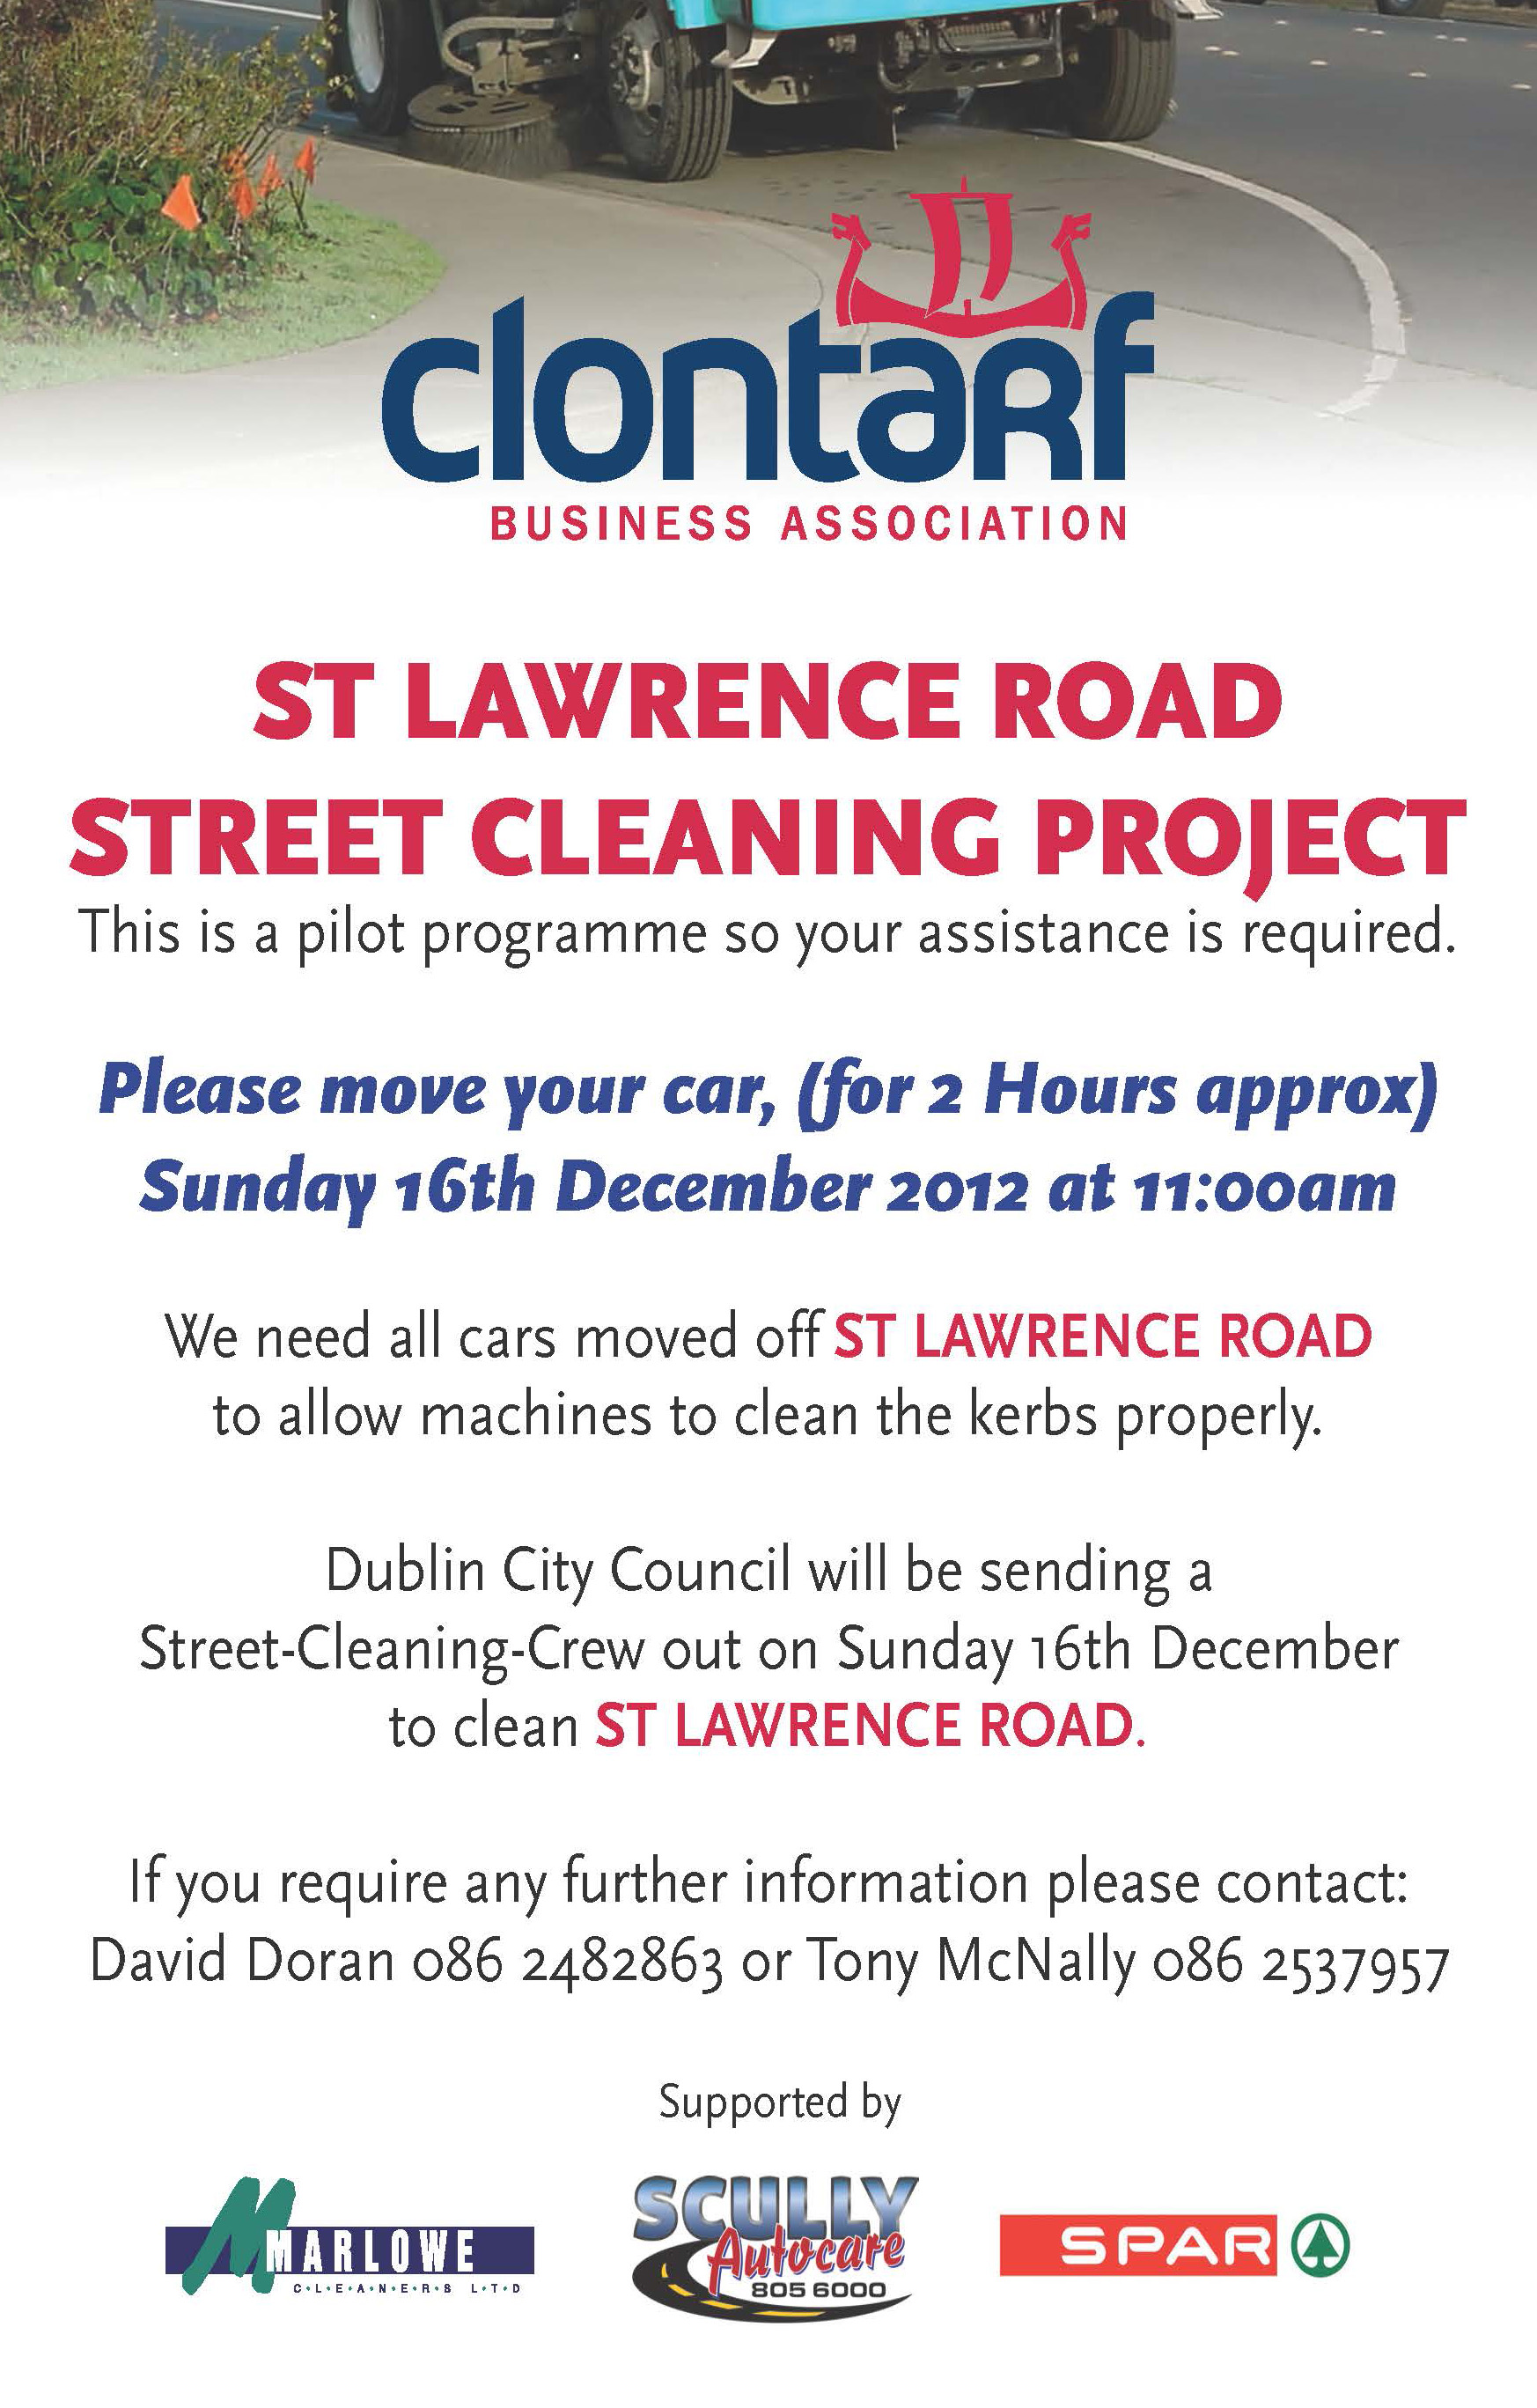 St. Lawrence Road Street Cleaning Project